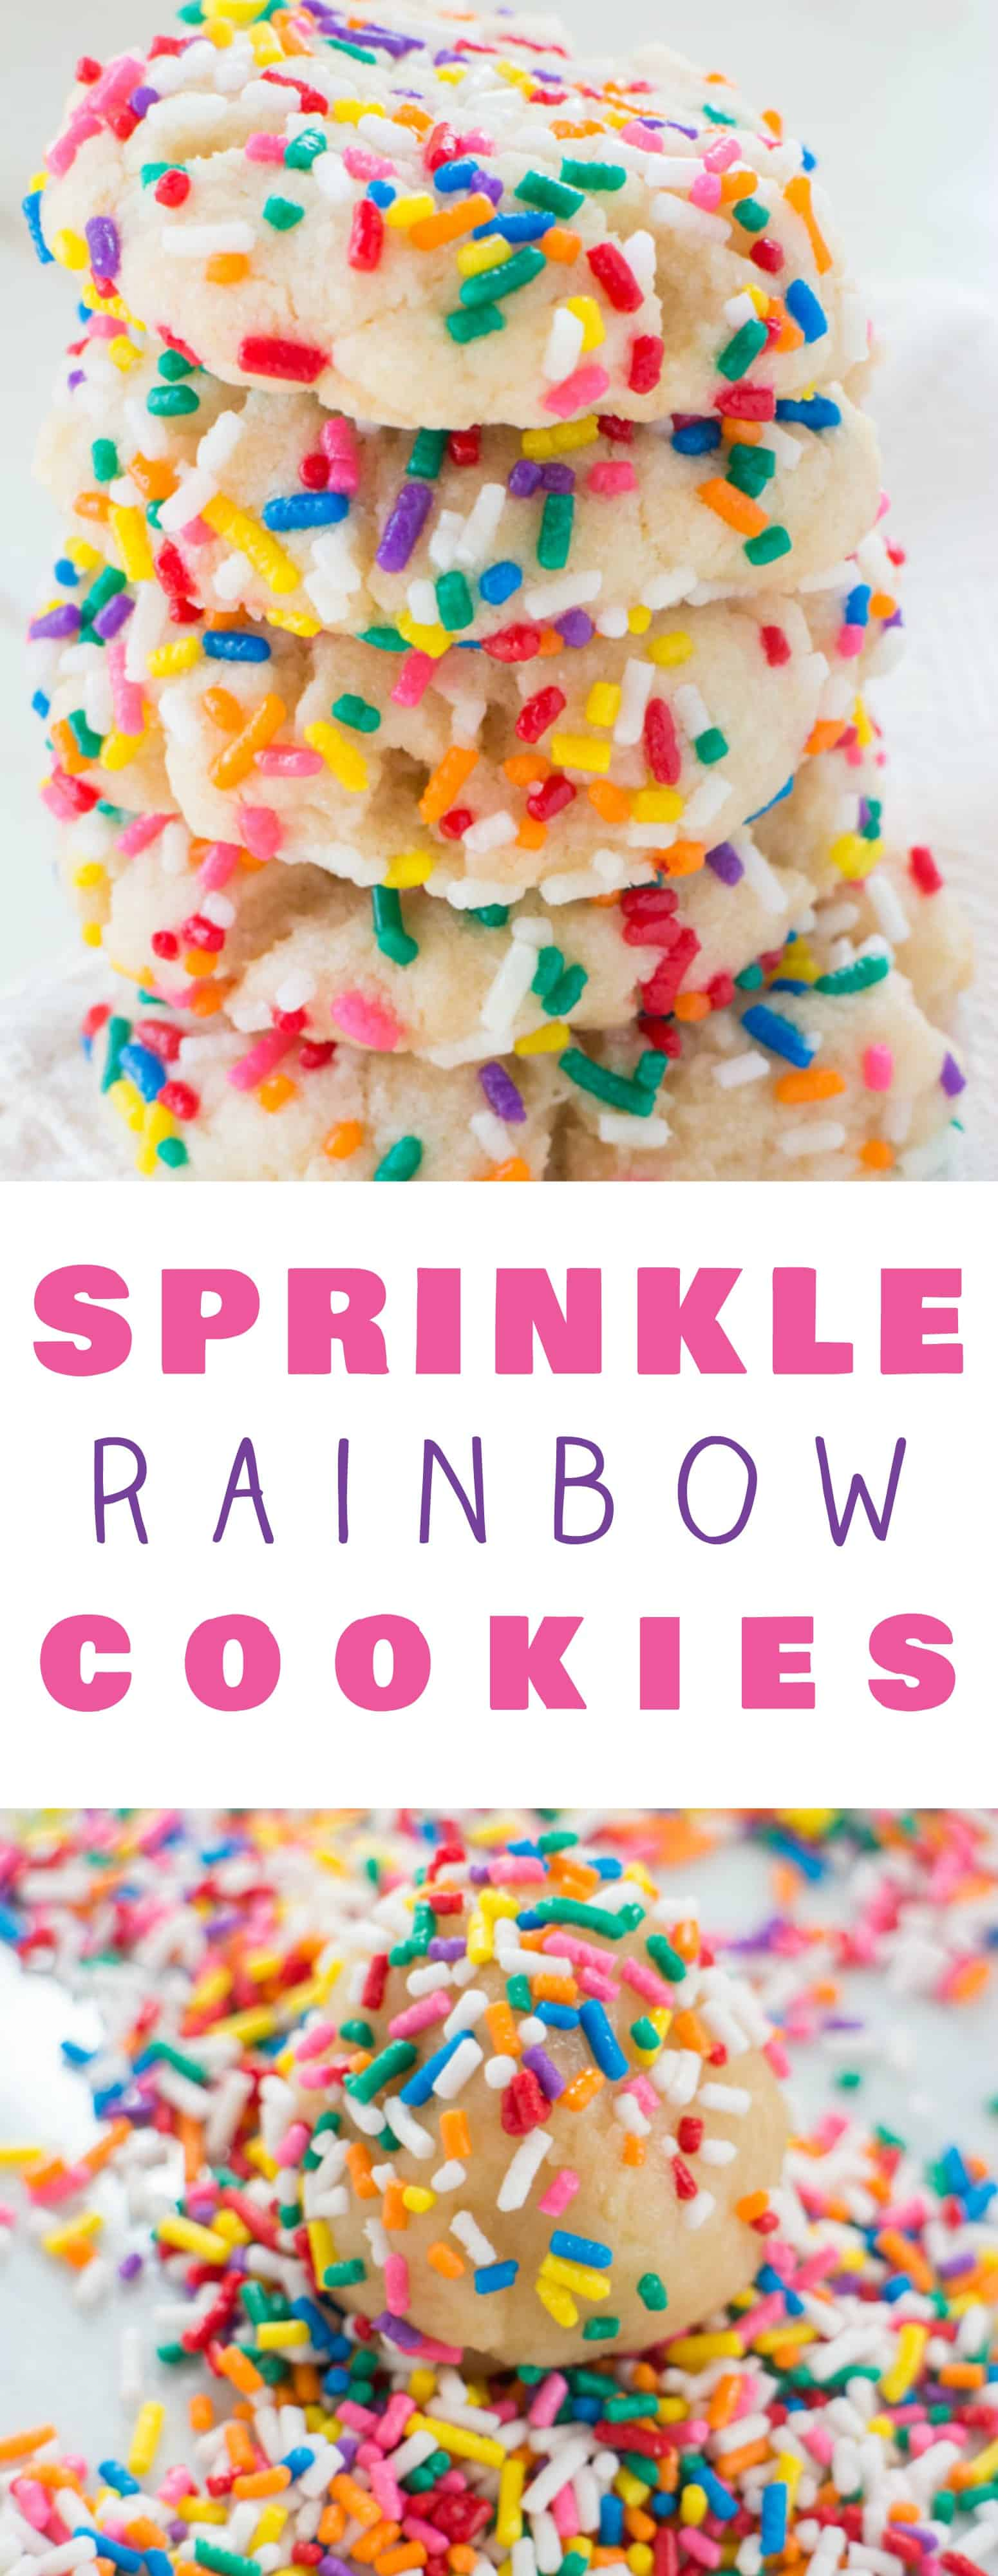 RAINBOW Sprinkled BUTTER Cookies! They taste like Funfetti Butter Cookies! These delicious cookies are easy to make and uses evaporated milk to make the cookies extra soft! They melt in your mouth! Roll them around in colored sprinkles to make them more fun! Recipe makes 2 dozen cookies.